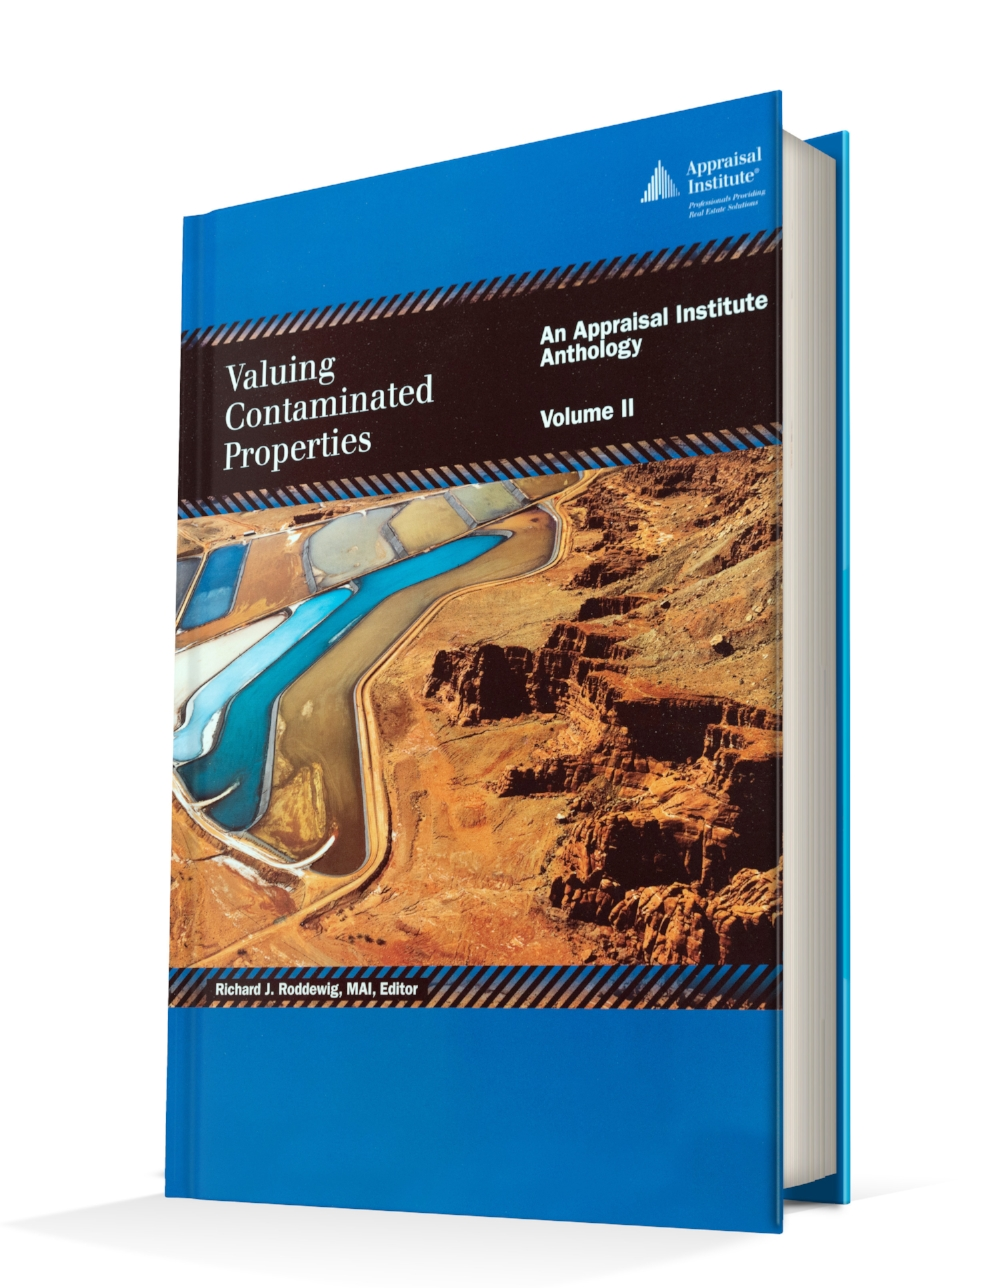 Valuating Contaminated Properties: An Appraisal Institute Anthology, Volume II - Randall Bell, PhD, MAI, Contributing AuthorProperties impacted by contamination raise challenging appraisal issues. To ensure competence and meet appraisal standards, practitioners must understand the history and development of widely recognized and generally accepted methods for handling these challenging appraisal assignments. Valuing Contaminated Properties: An Appraisal Institute Anthology, Volume II, includes significant articles, seminar material, and professional guidelines on the topic published since 2002, when the first volume of the series was released. Using this collection curated by an appraisal expert, practitioners can become well-versed in all the recent trends regarding contaminated properties, including: the accepted understanding that contamination's impact on value is largely temporary; the shifting focus from appraising industrial and commercial source sites to appraising residential properties affected by contamination; the increased availability of online sales data and the new emphasis on using more market data in contamination assignments.